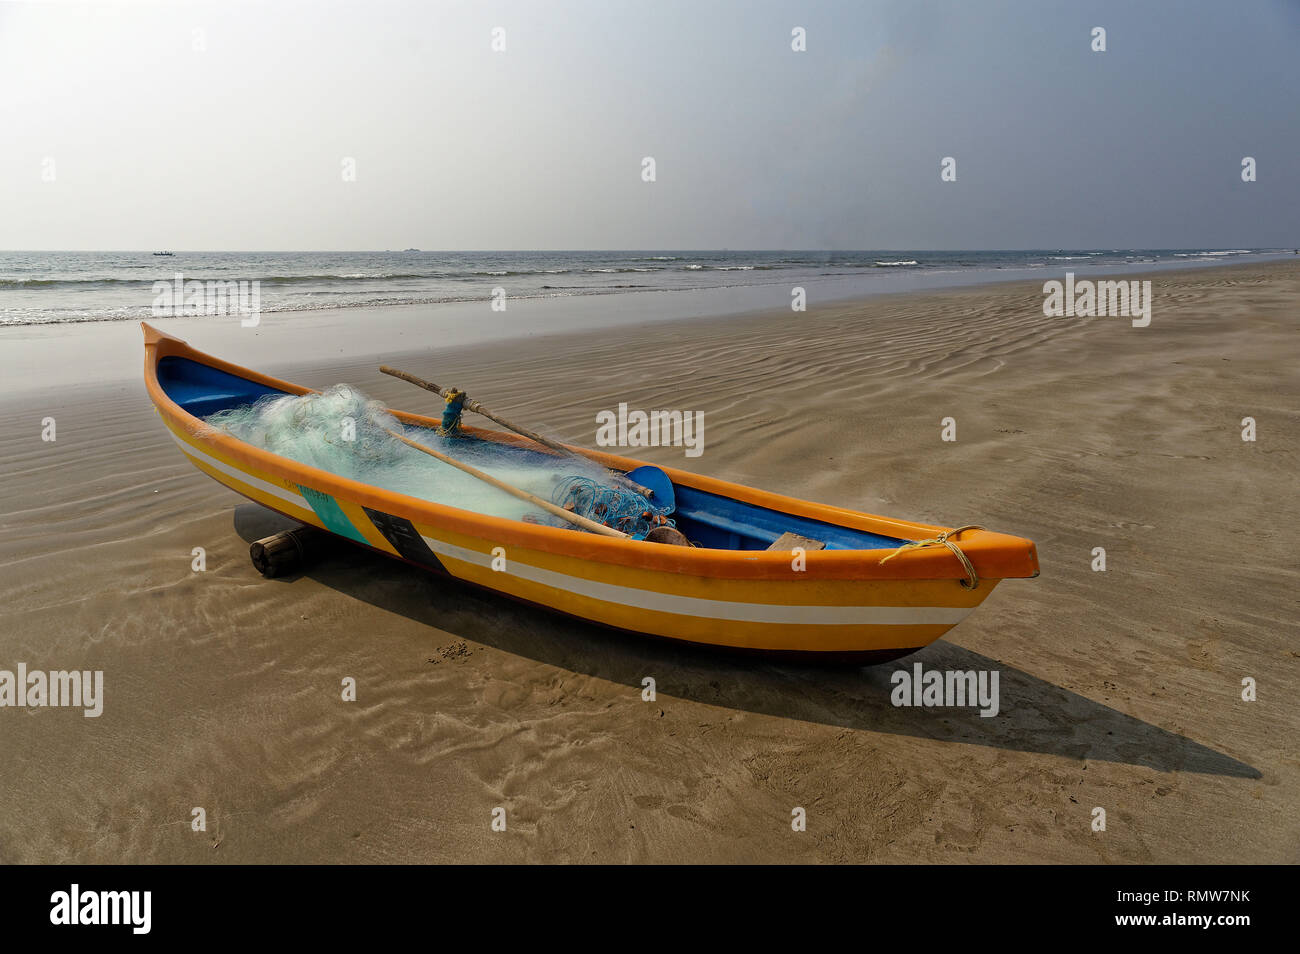 Fishing boat on devbagh beach, sindhudurg, Maharashtra, India, Asia - Stock Image